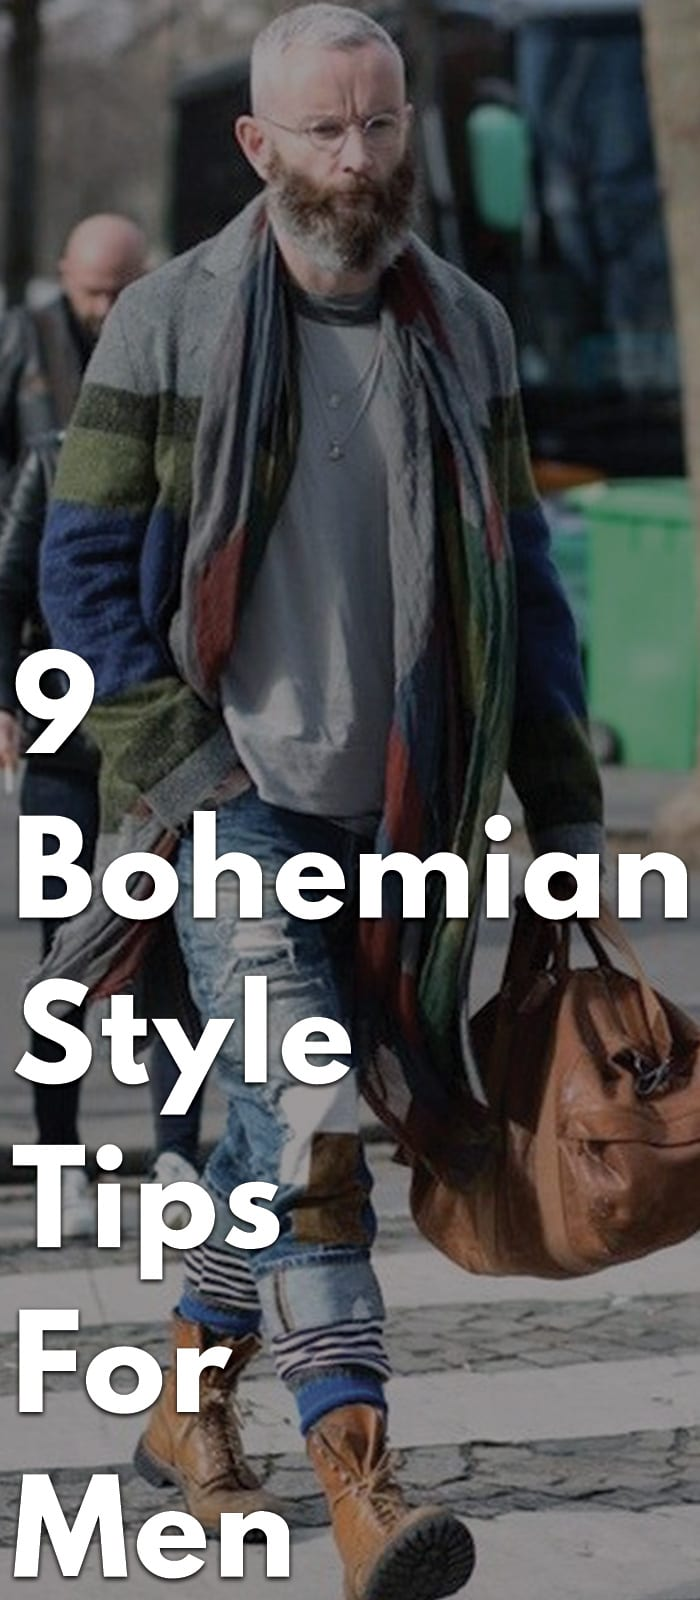 9-Bohemian-Style-Tips-for-Men